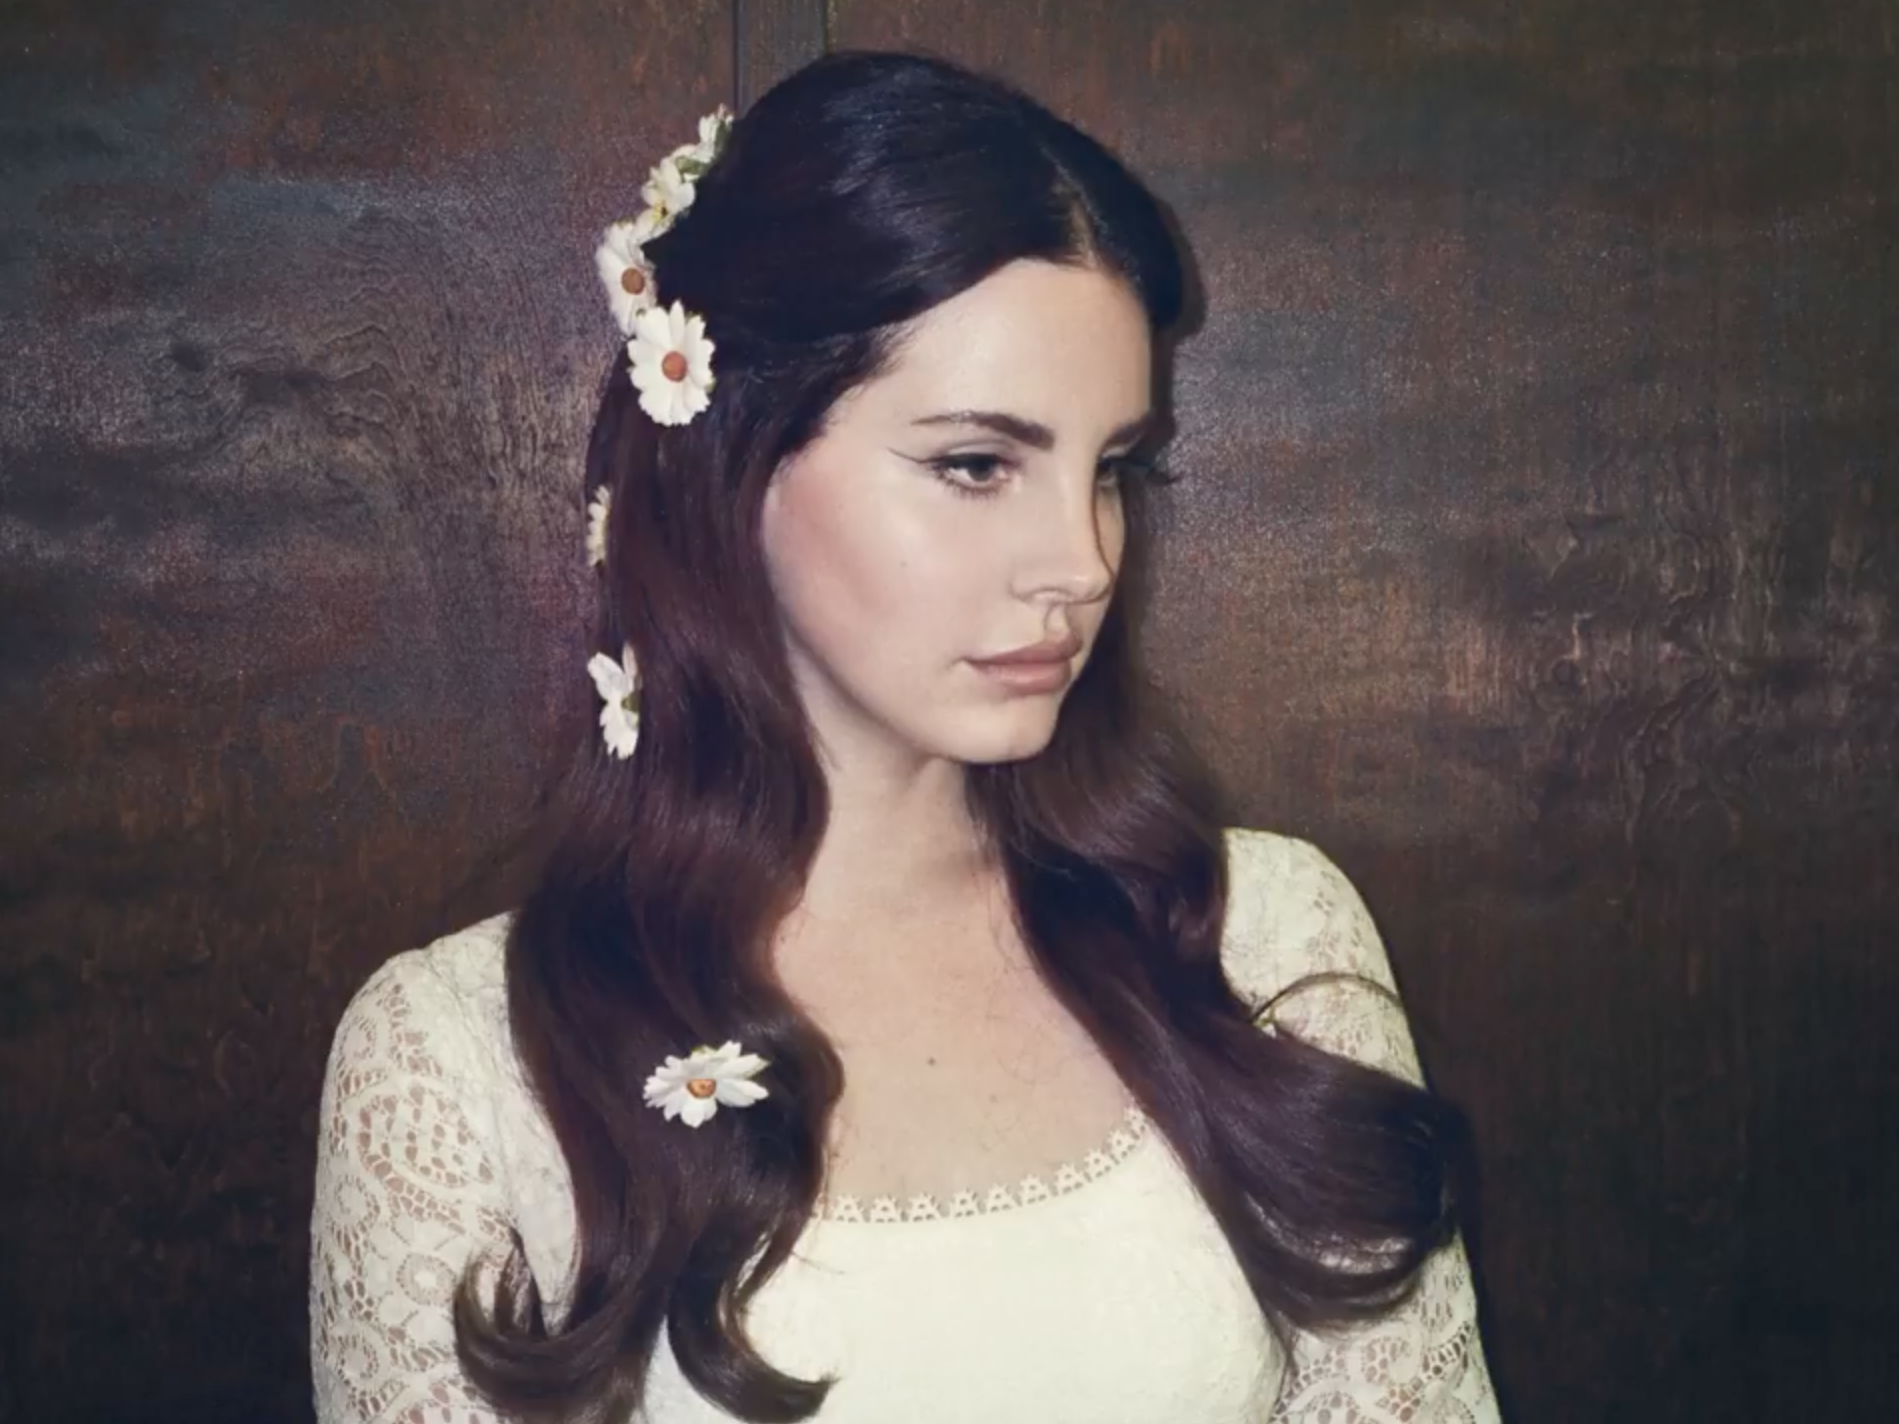 Lana Del Rey Releases Most Lana Song to Date